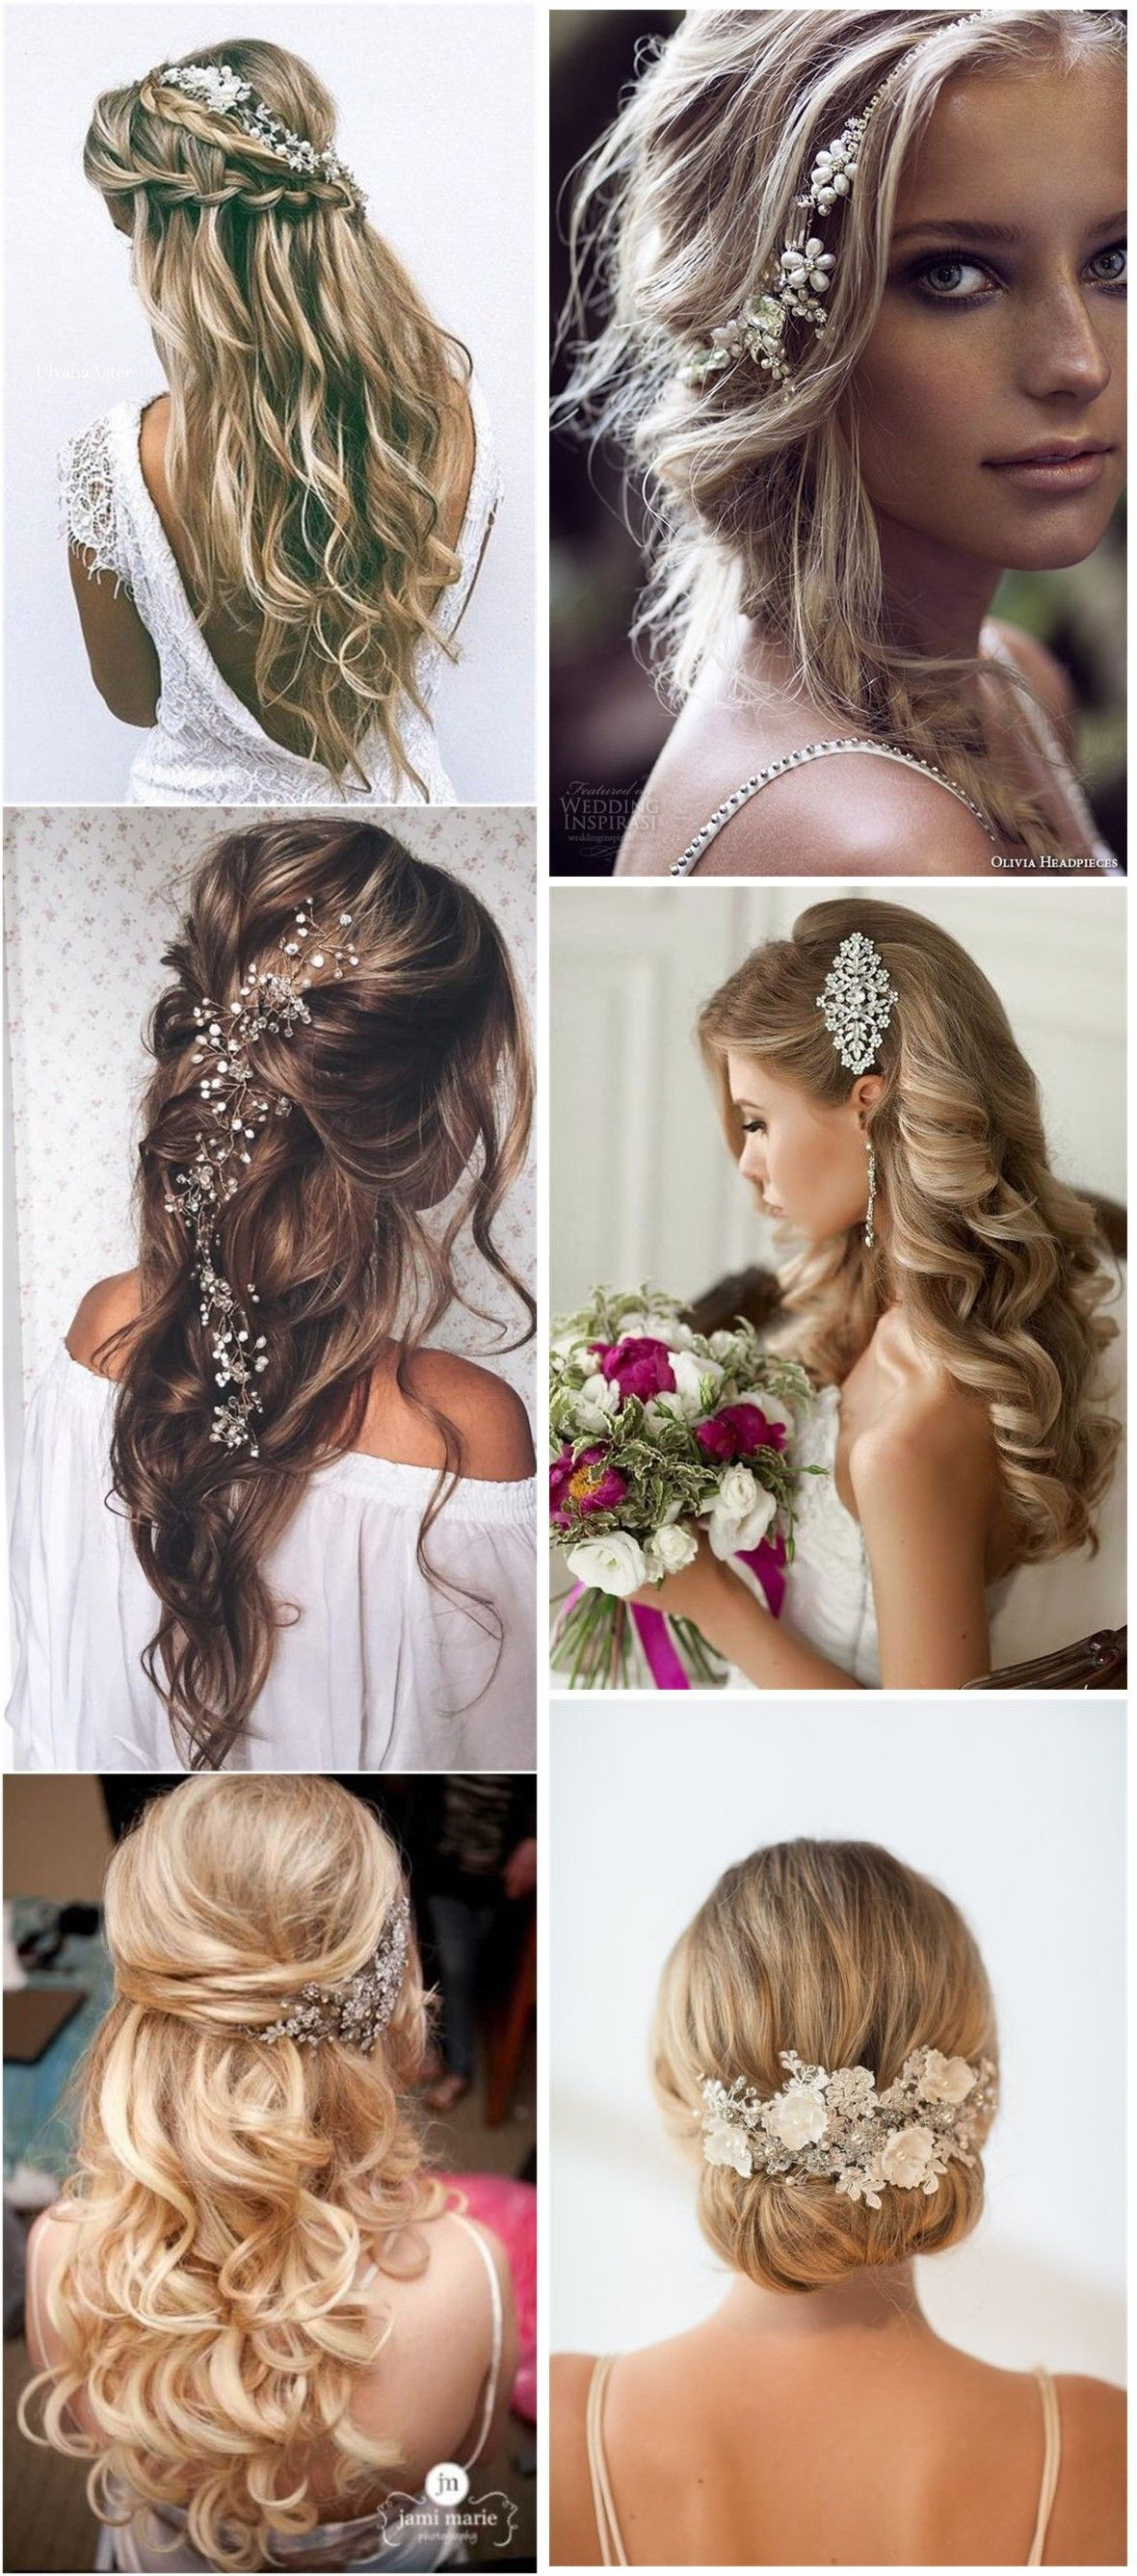 hair comes the bride - 20 bridal hair accessories get style